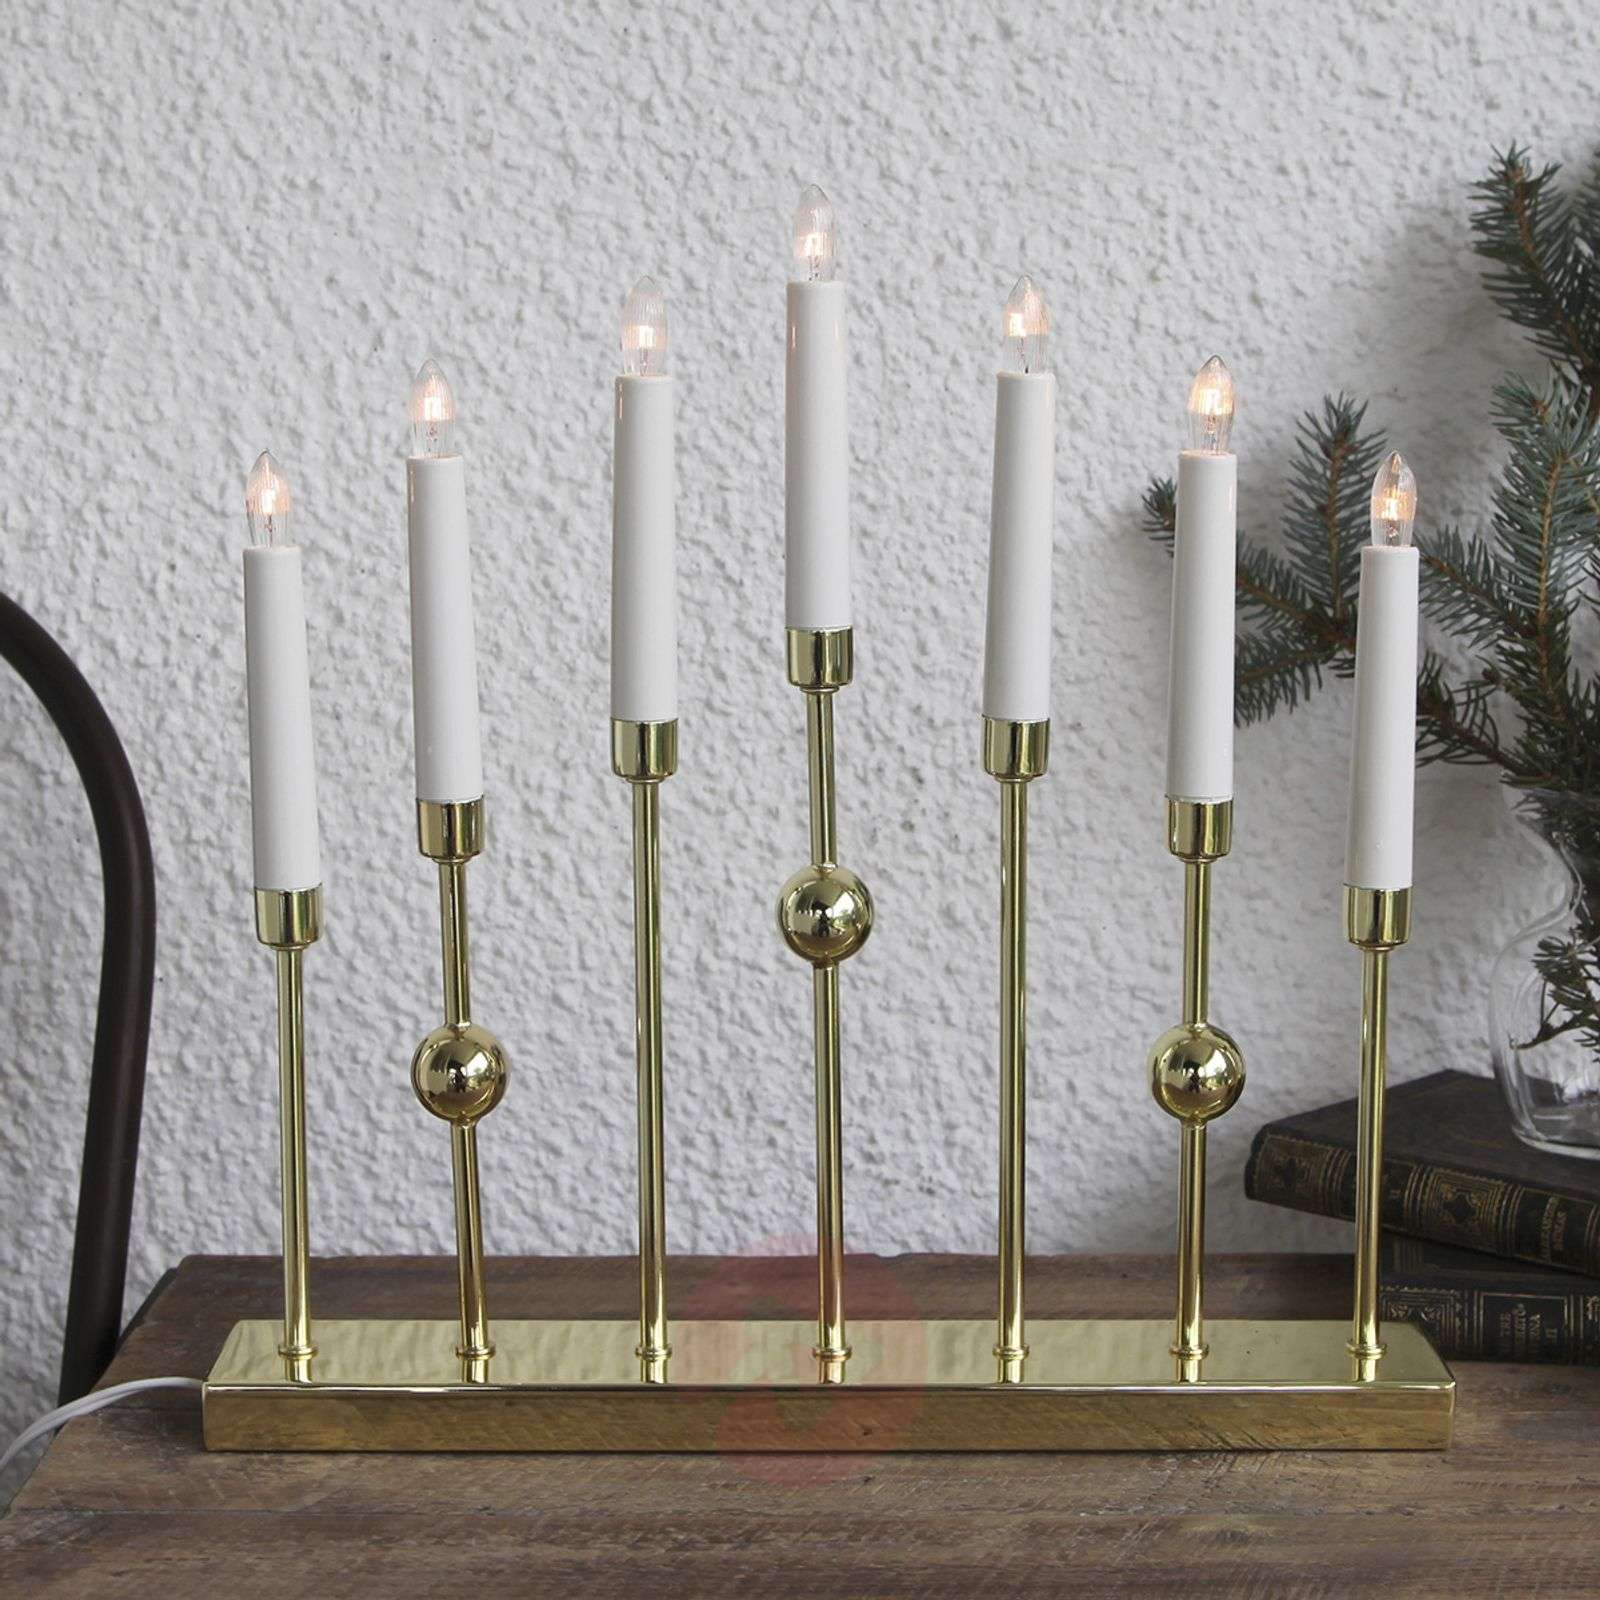 Luxurious candleholder Gustavo 7-light-1522580-06